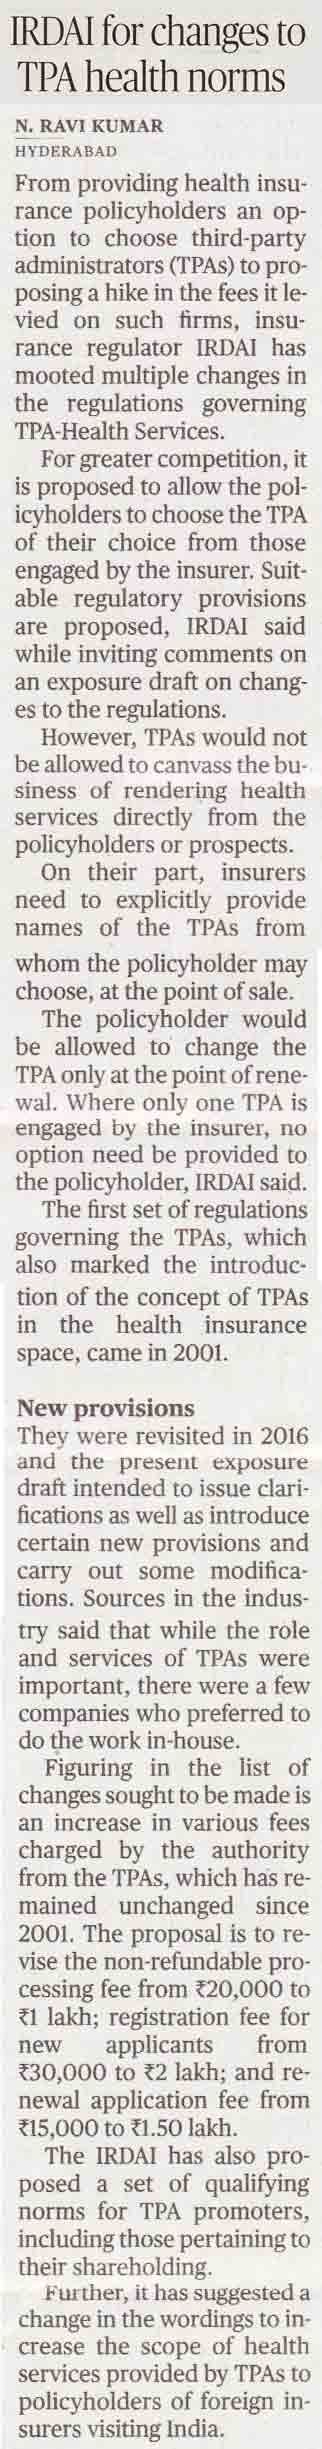 IRDAI for changes to TPA health norms